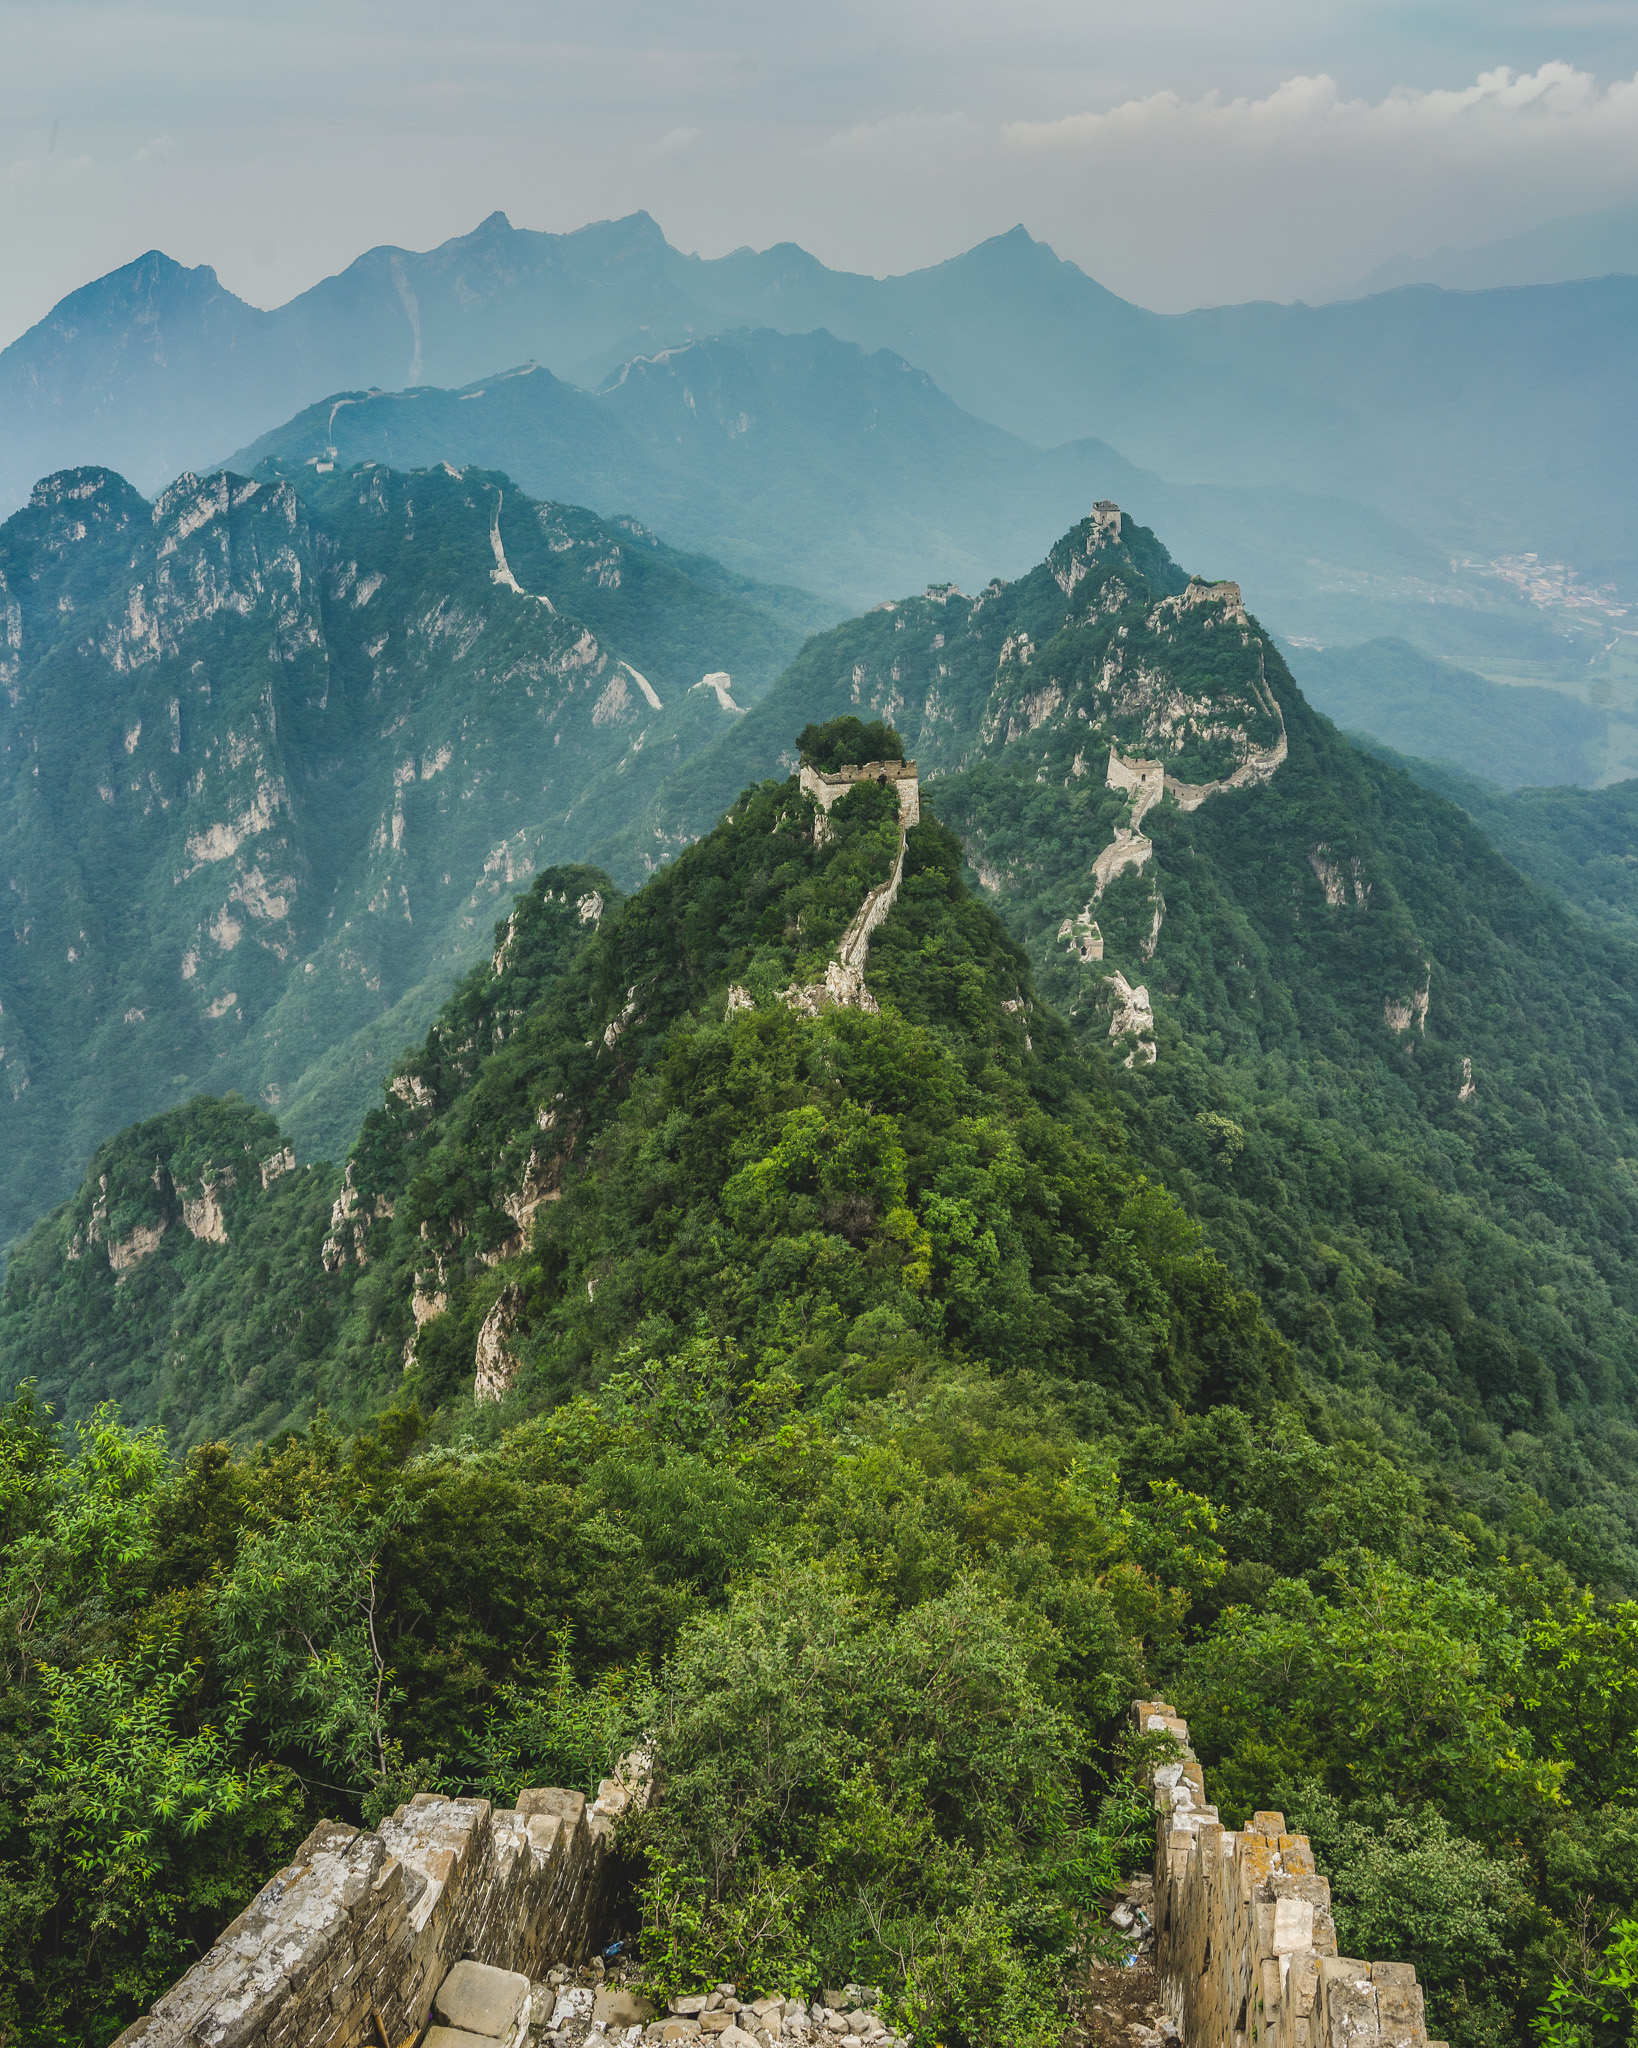 The unrestored Great Wall of China